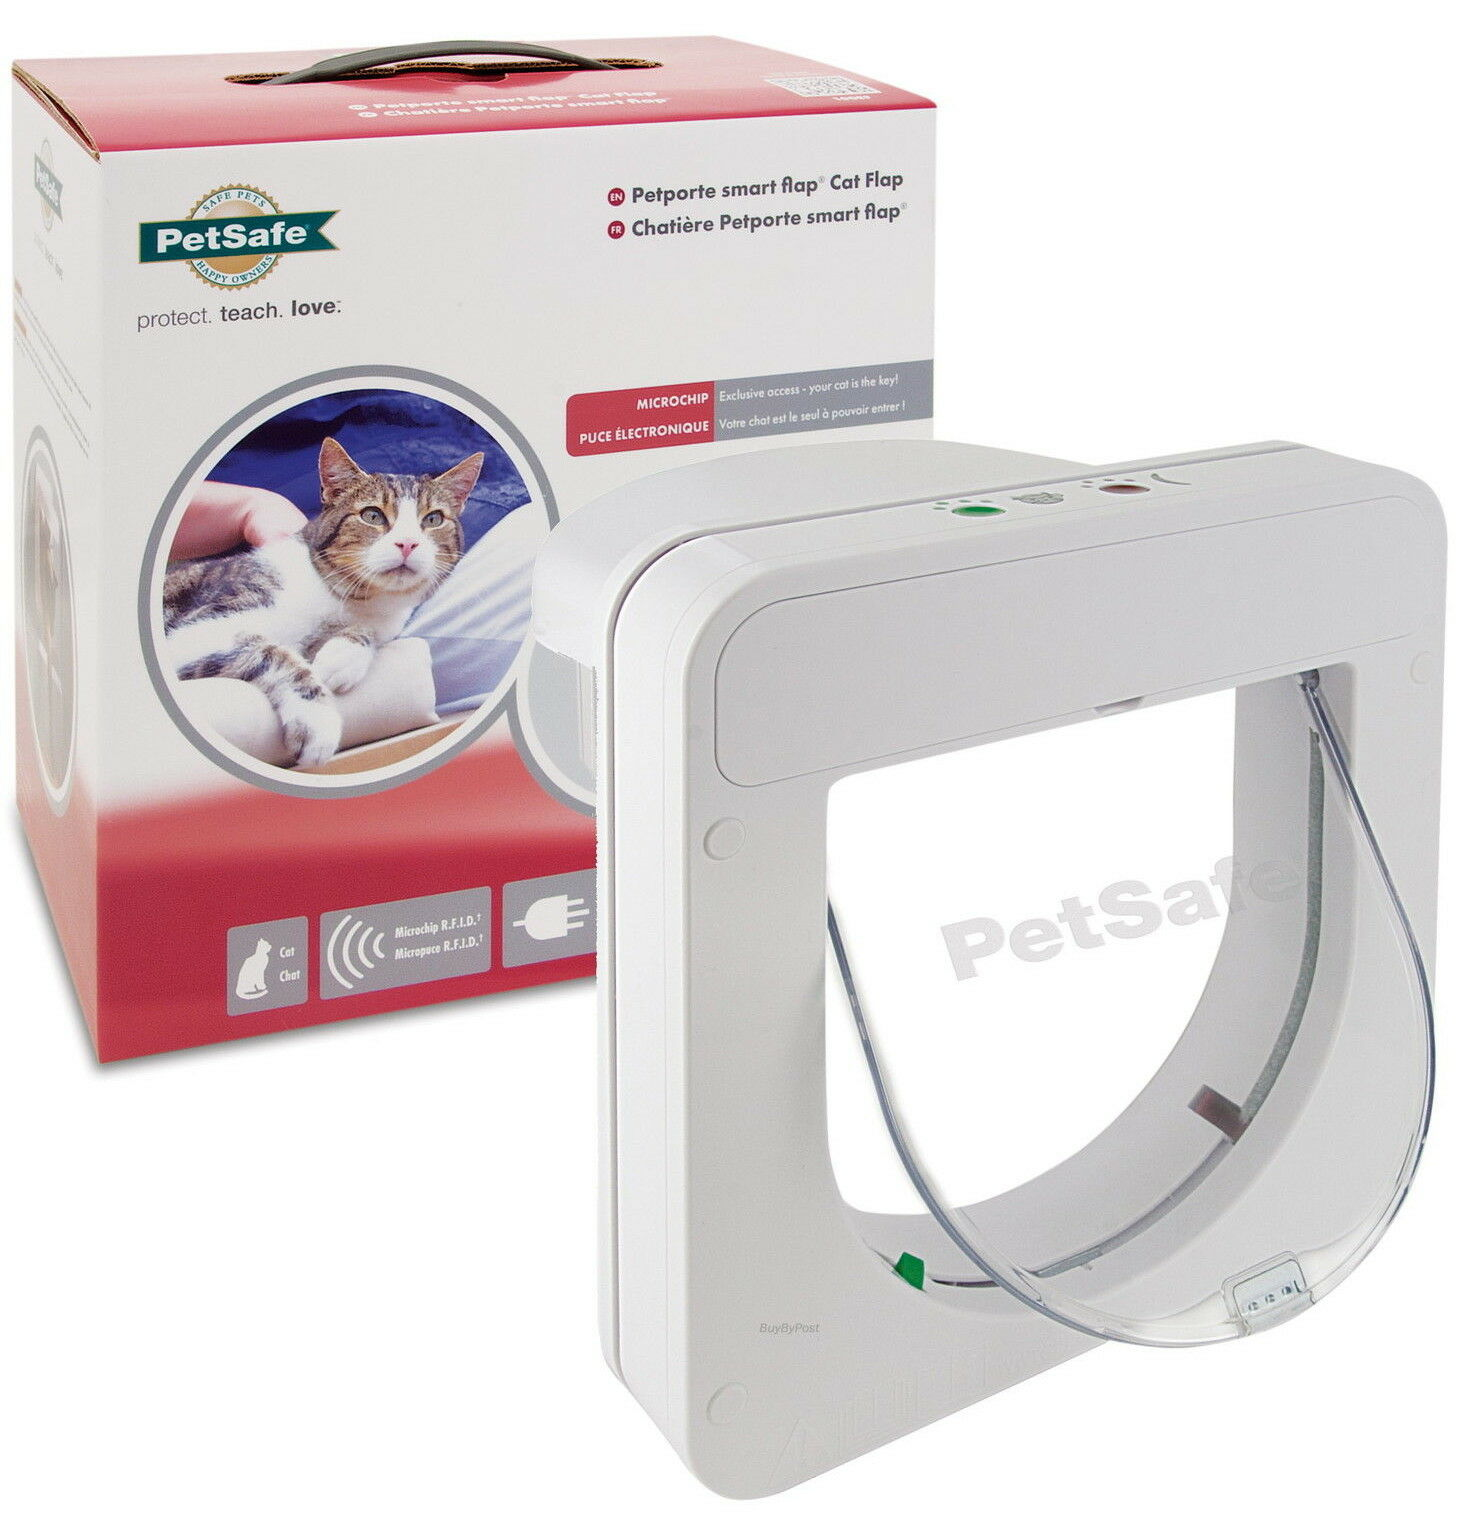 Petsafe Petporte Pet Porte Microchip Cat Flap White Or Brown Micro Chip Tt